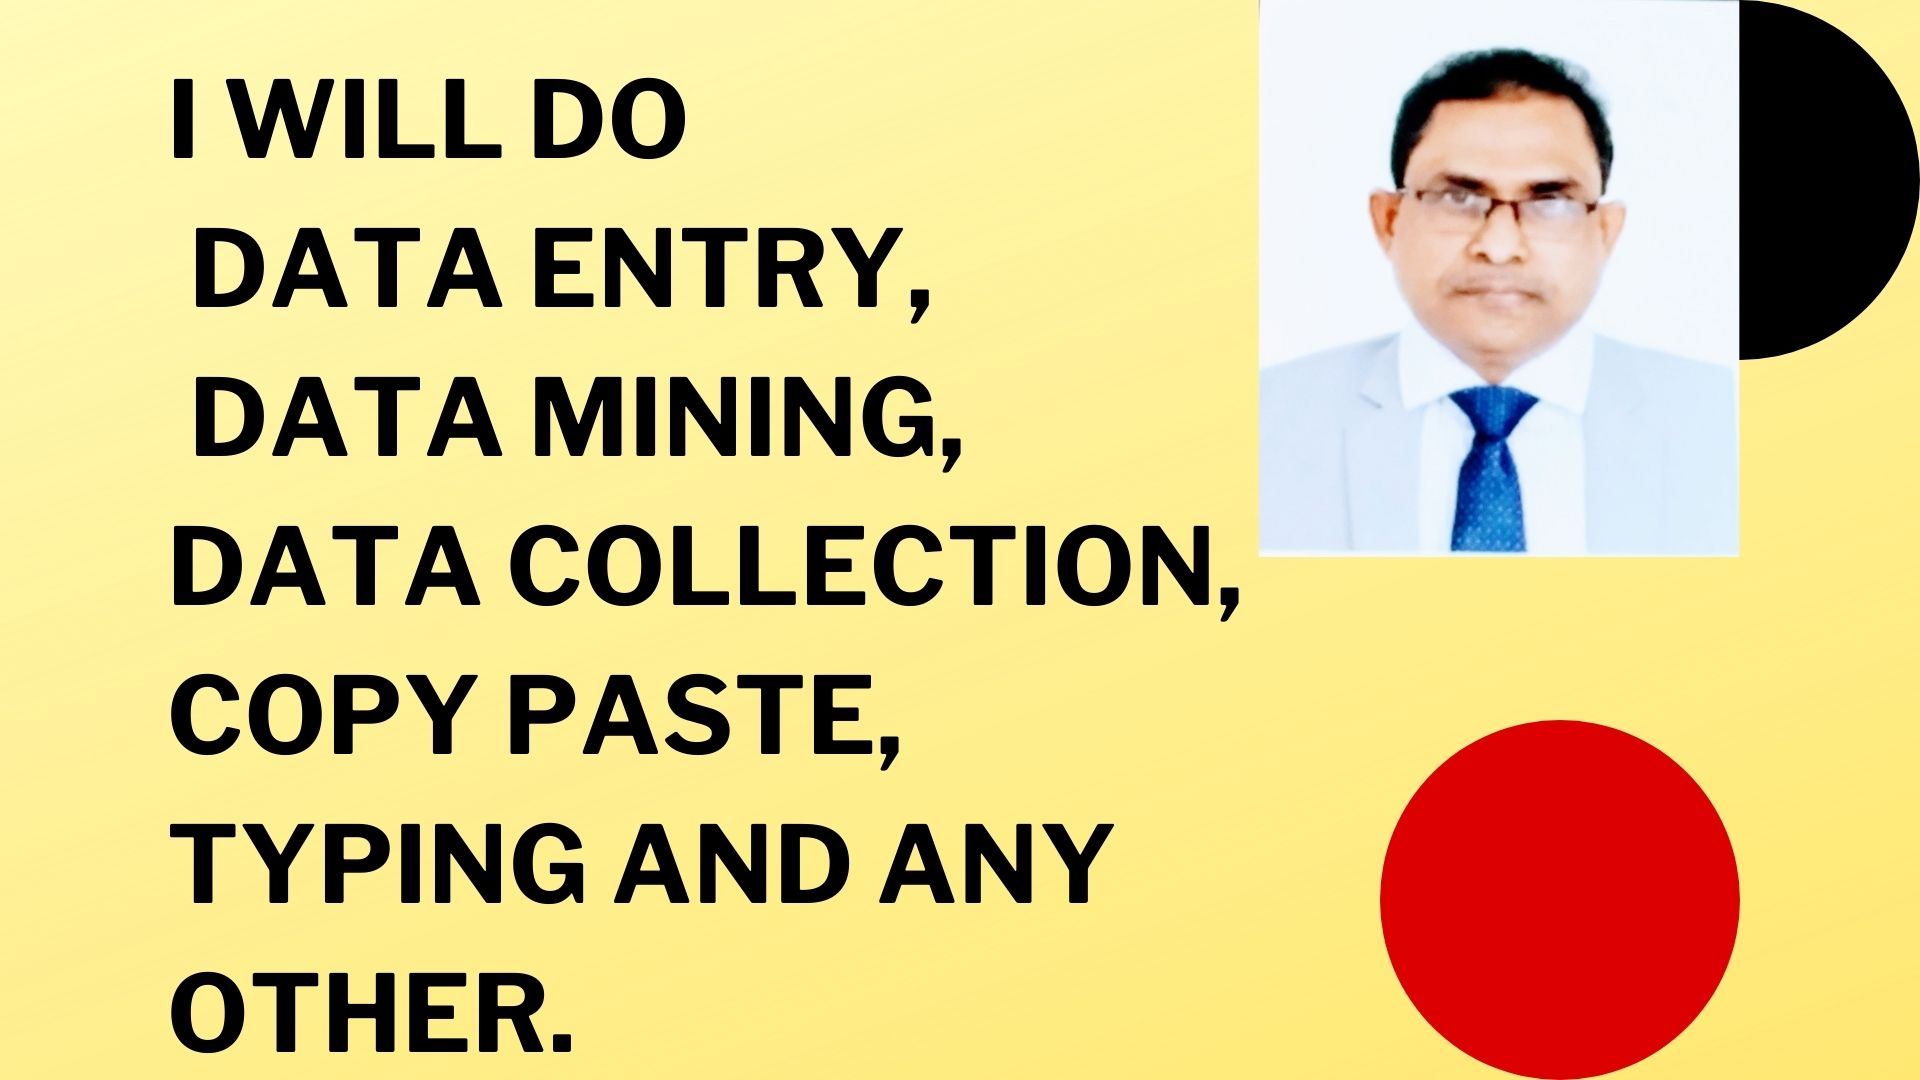 I will do Data entry, Data mining,  Data collection, Copy paste,  Typing and any other